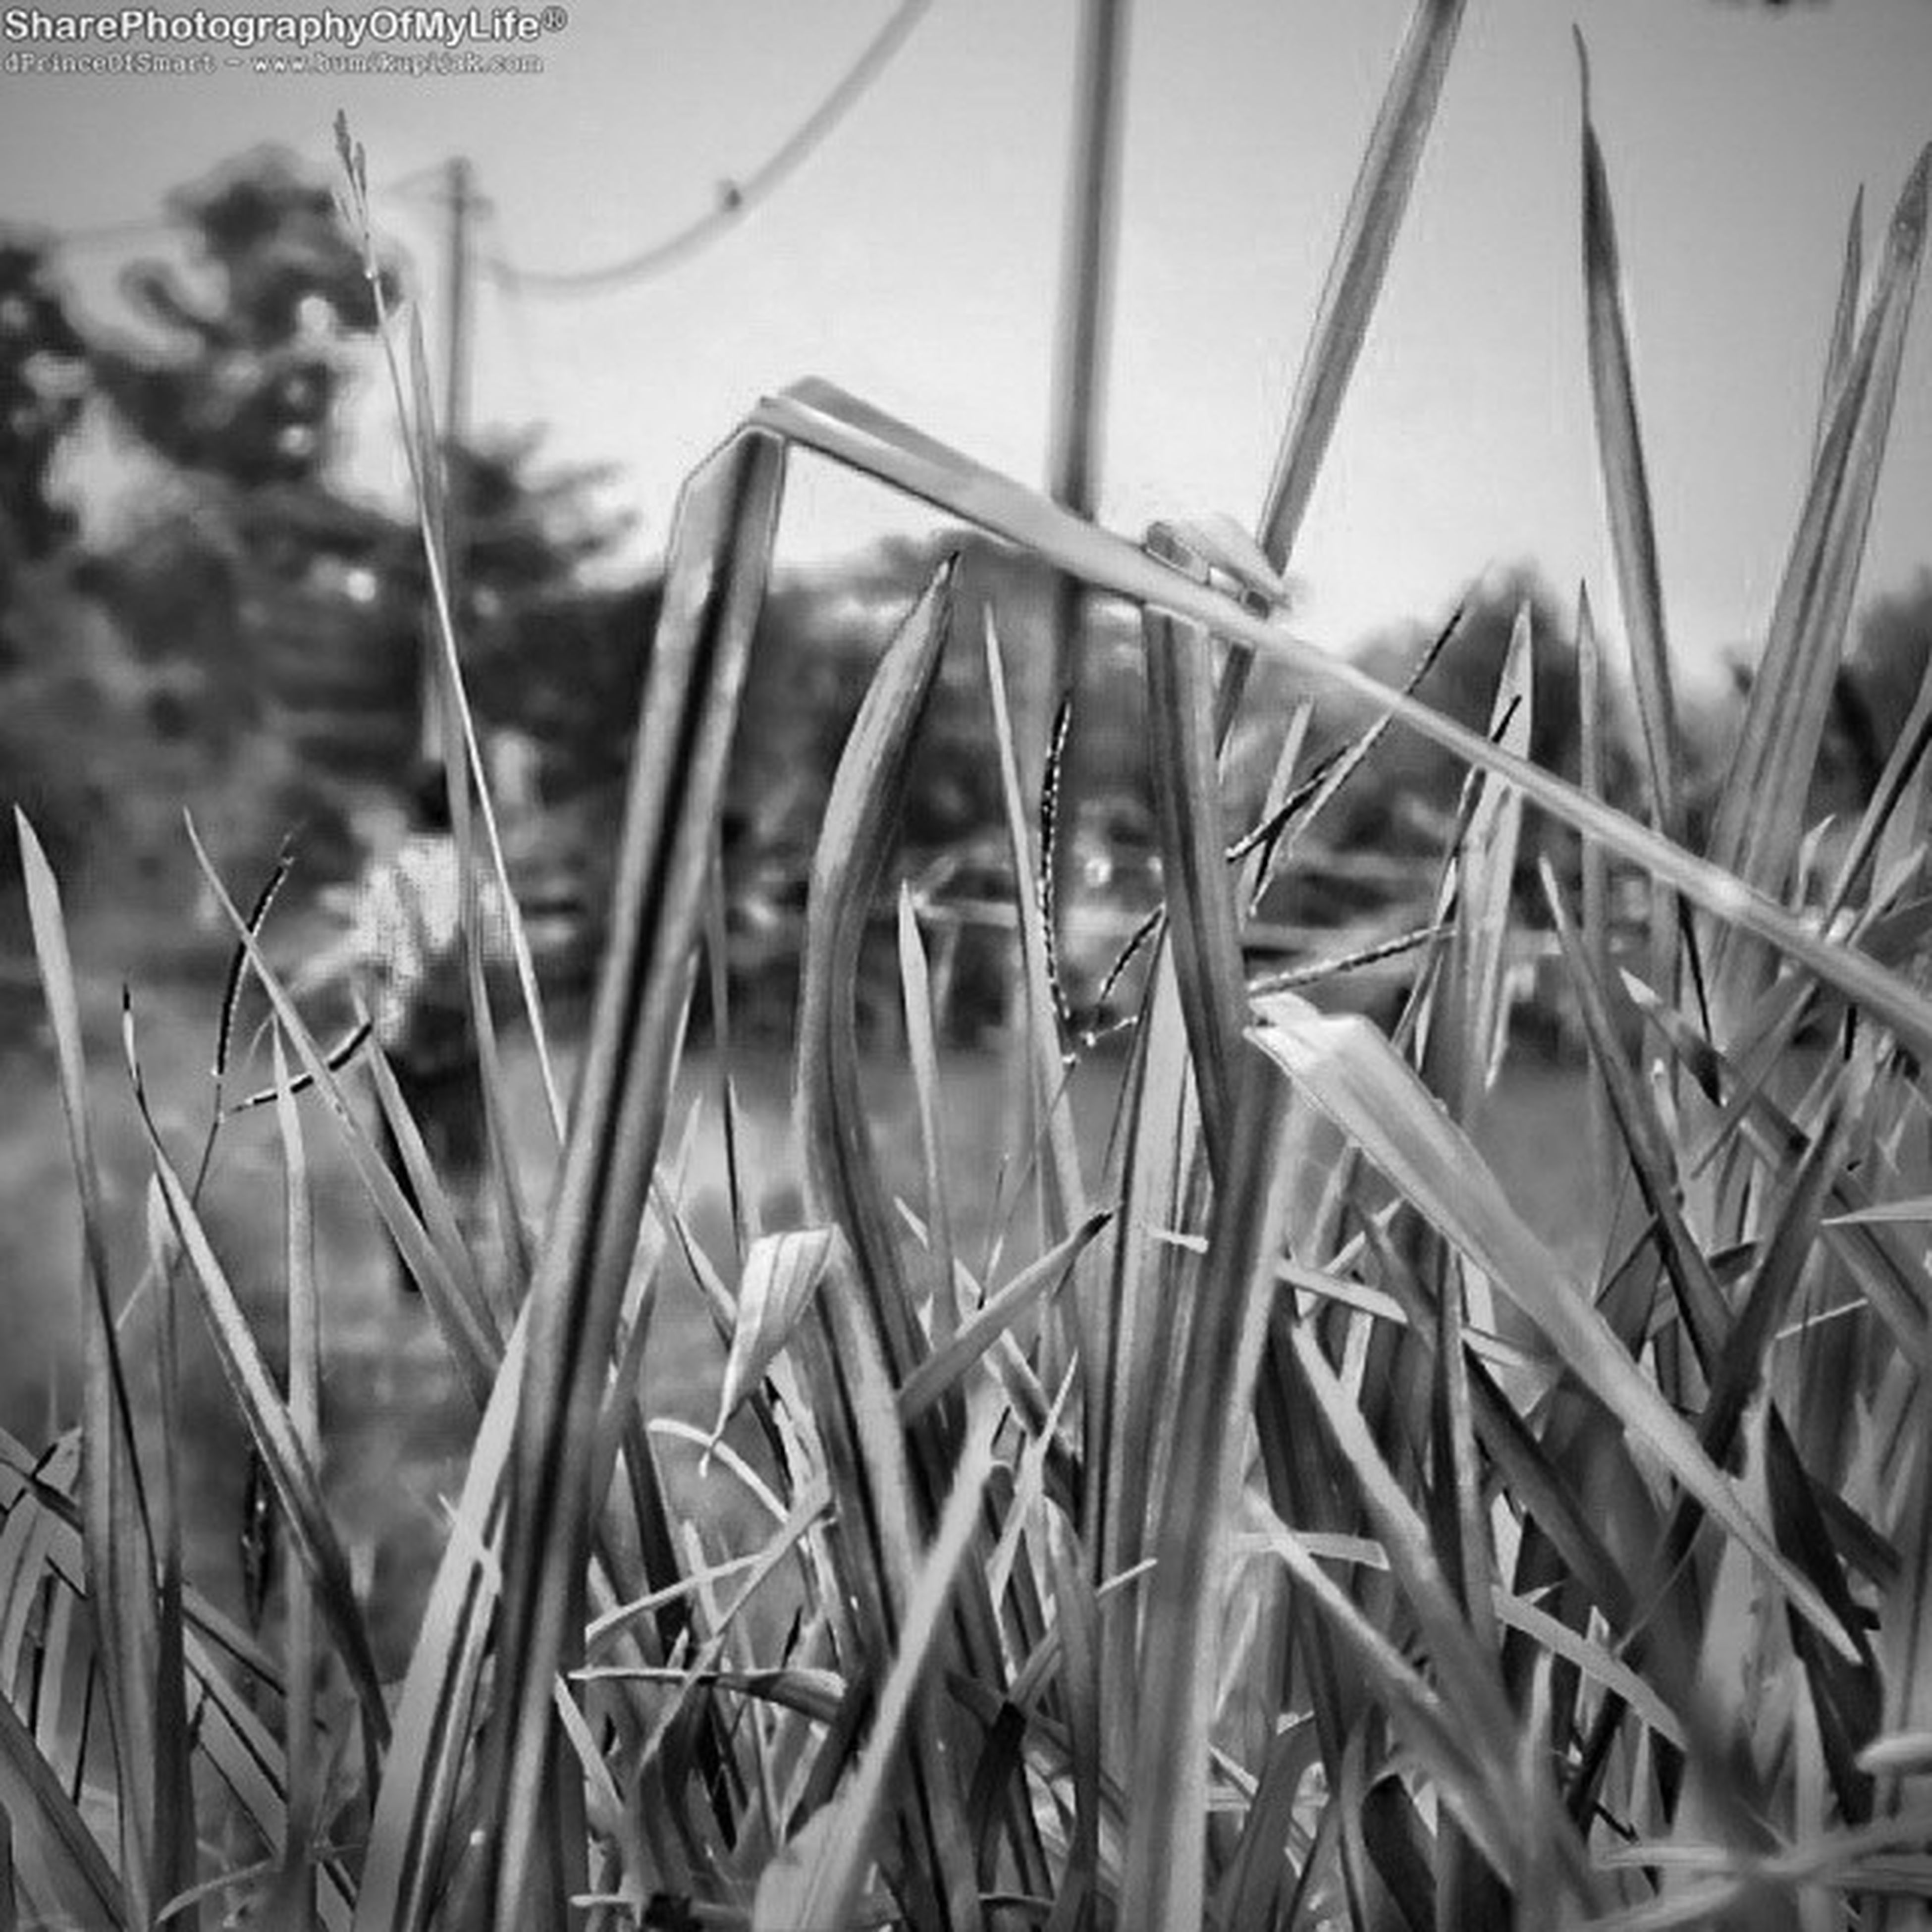 grass, animal themes, one animal, field, selective focus, plant, close-up, day, focus on foreground, outdoors, nature, grassy, wildlife, childhood, no people, portrait, looking at camera, animals in the wild, chainlink fence, high angle view